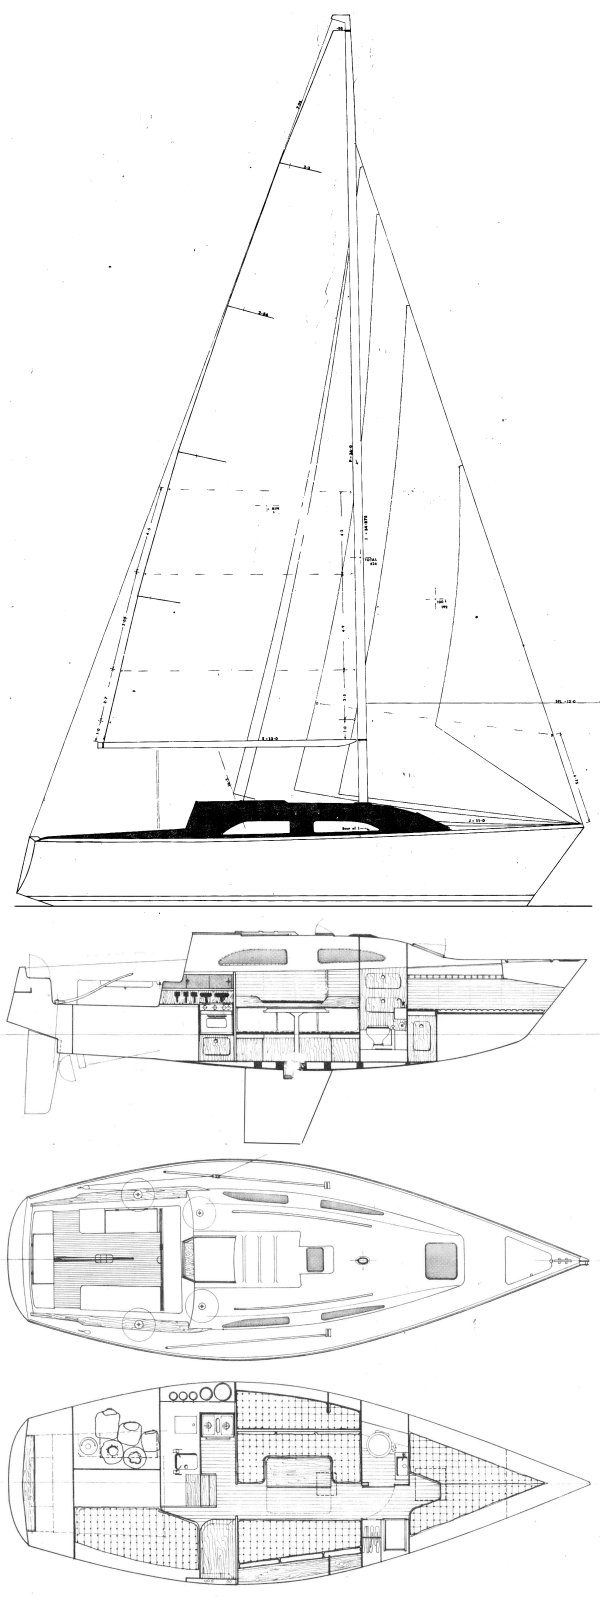 WHITING 29 drawing